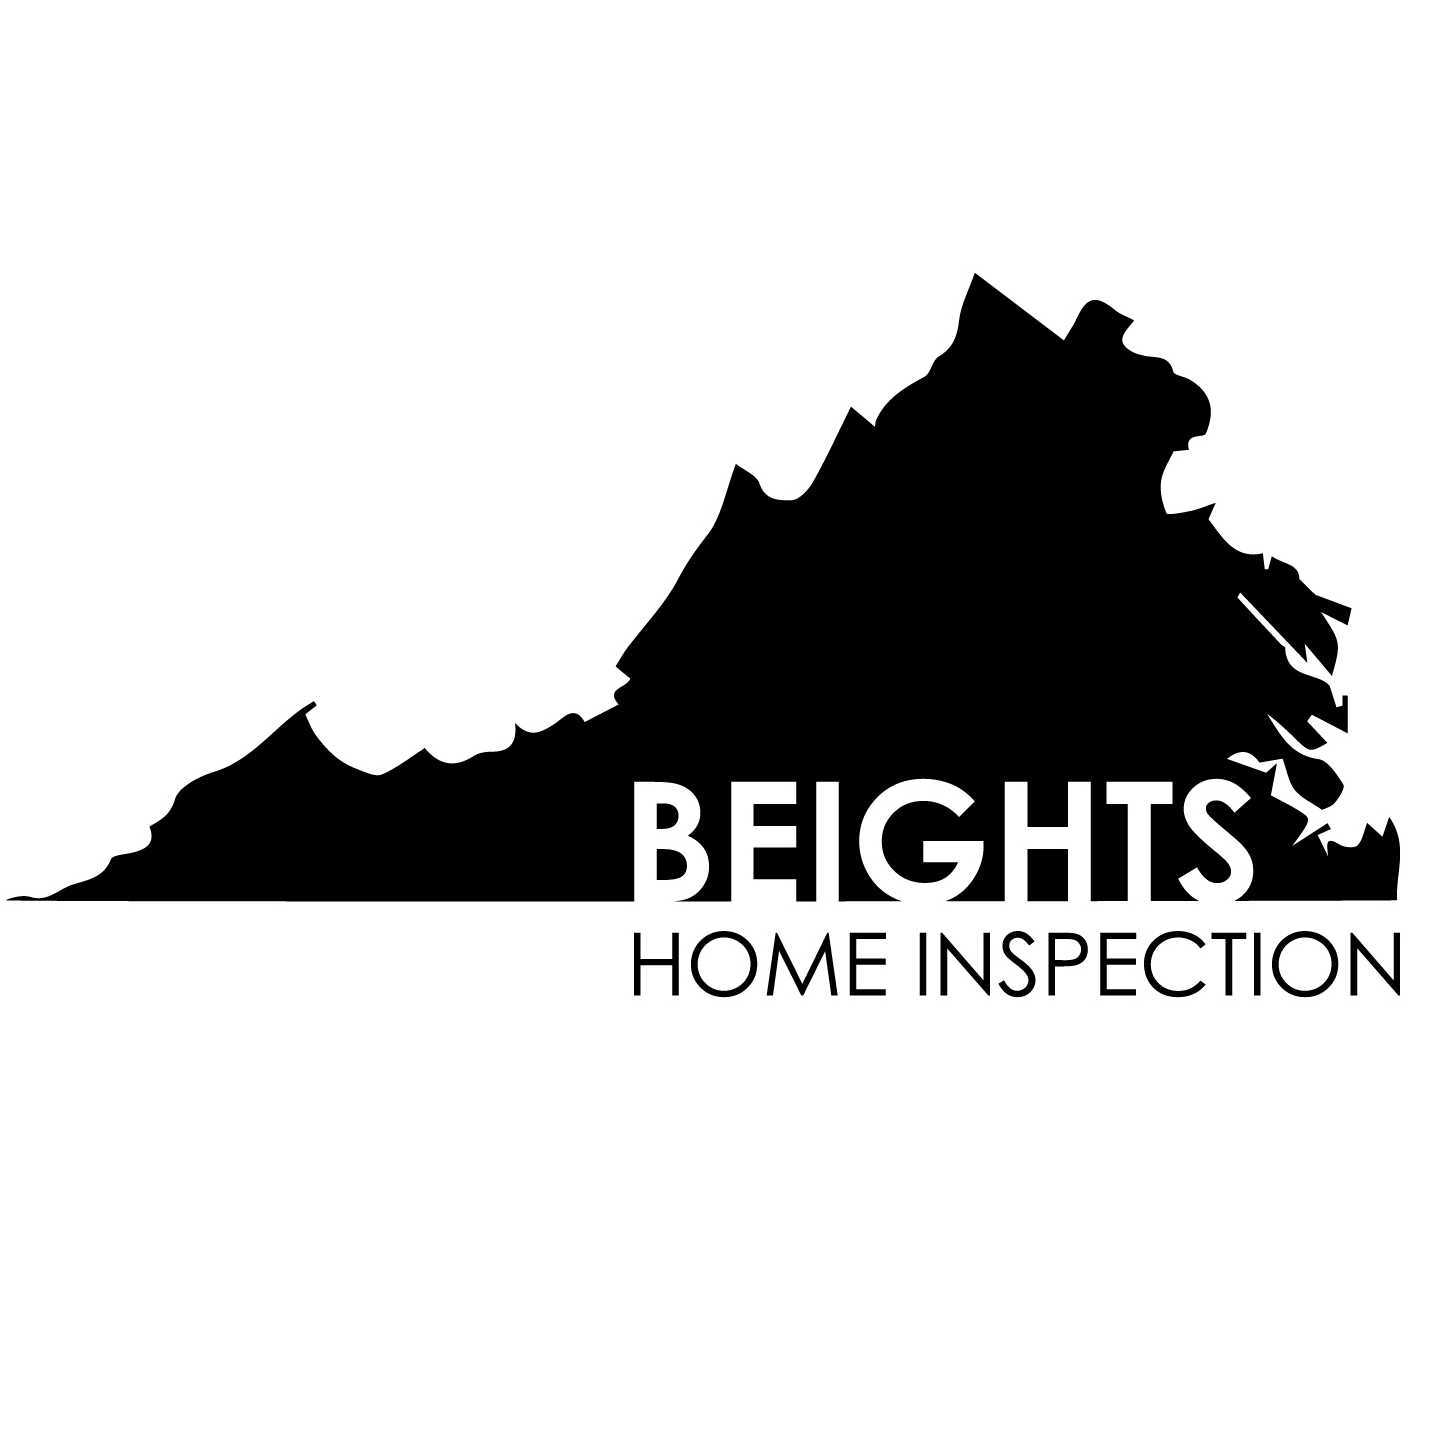 Beights home inspection b11 %28edited pixlr%29 %282%29